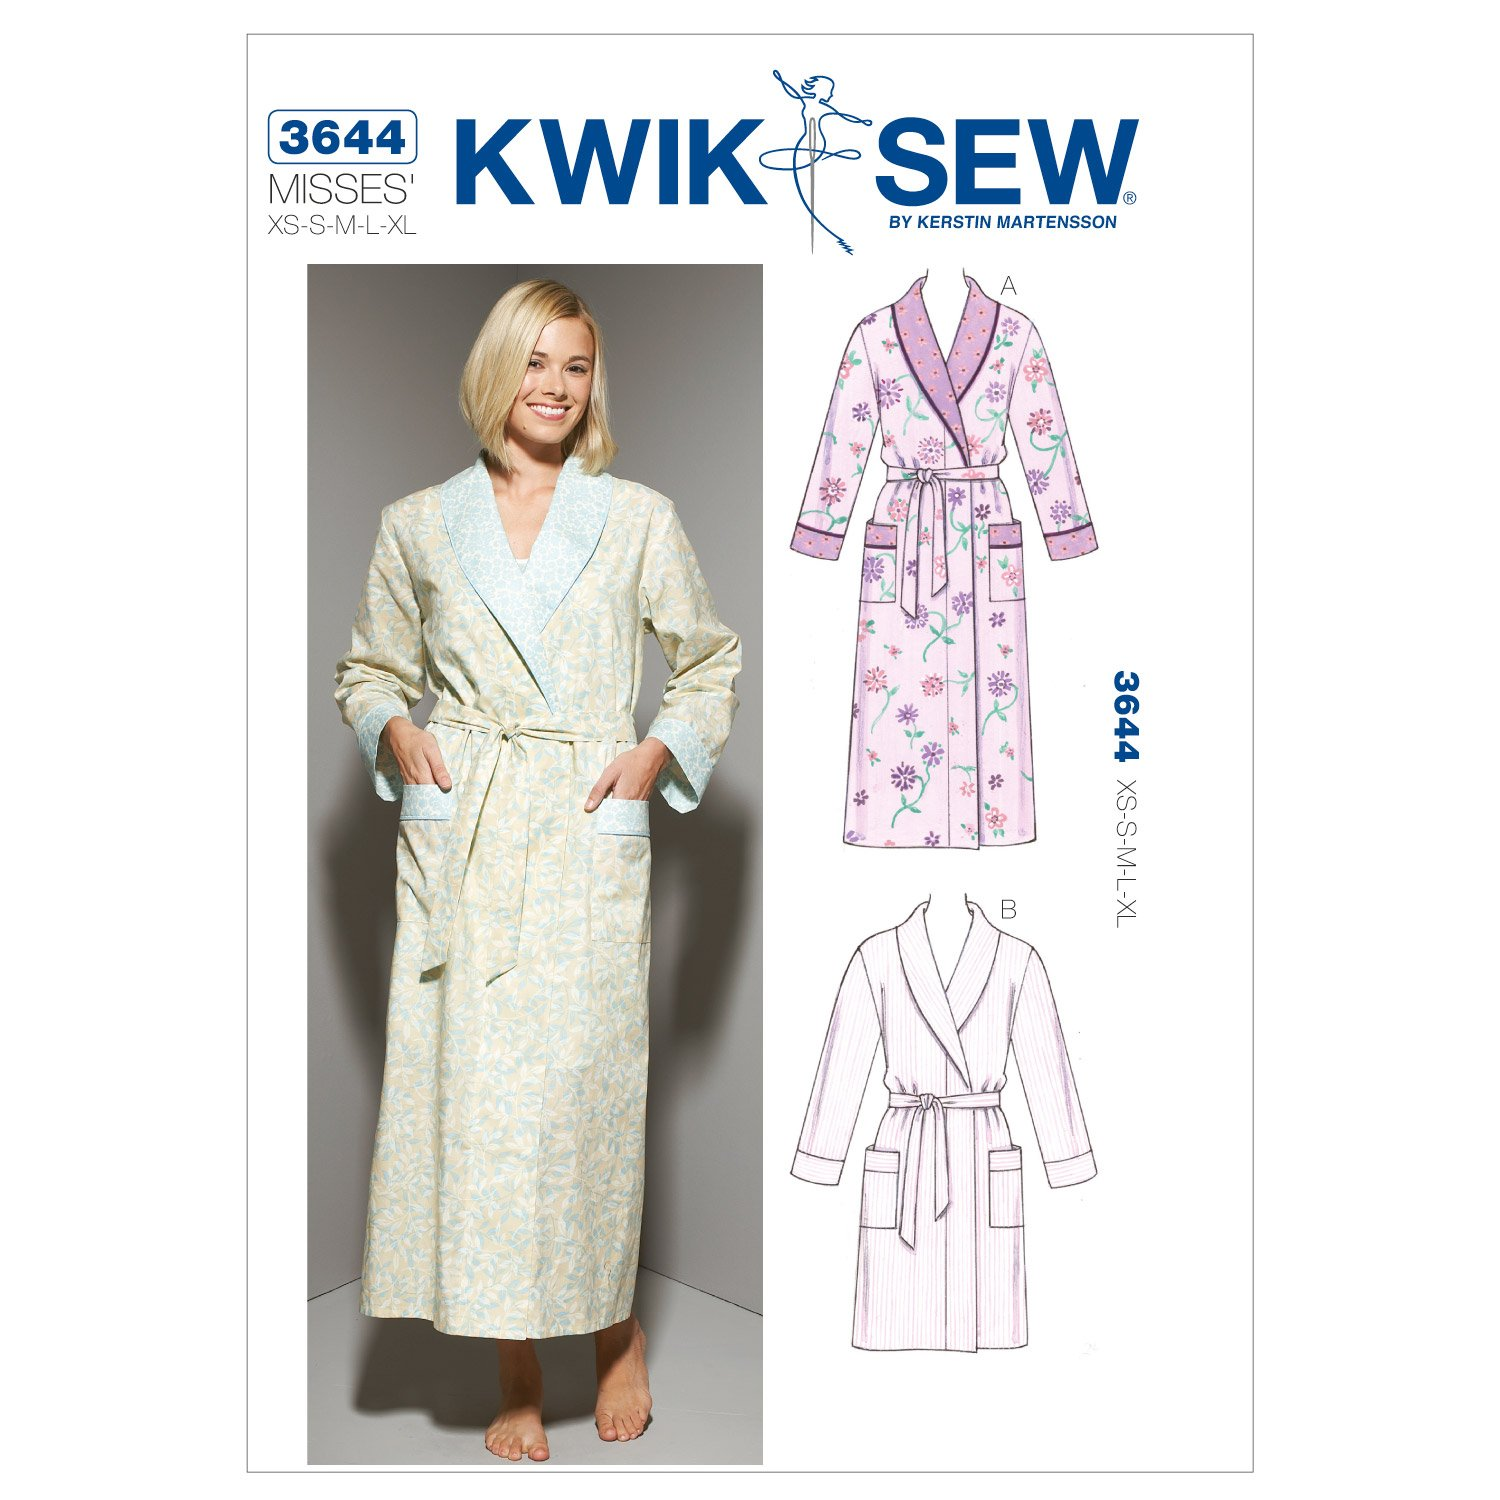 Amazon kwik sew k3644 robes sewing pattern size xs s m l xl amazon kwik sew k3644 robes sewing pattern size xs s m l xl arts crafts sewing jeuxipadfo Gallery